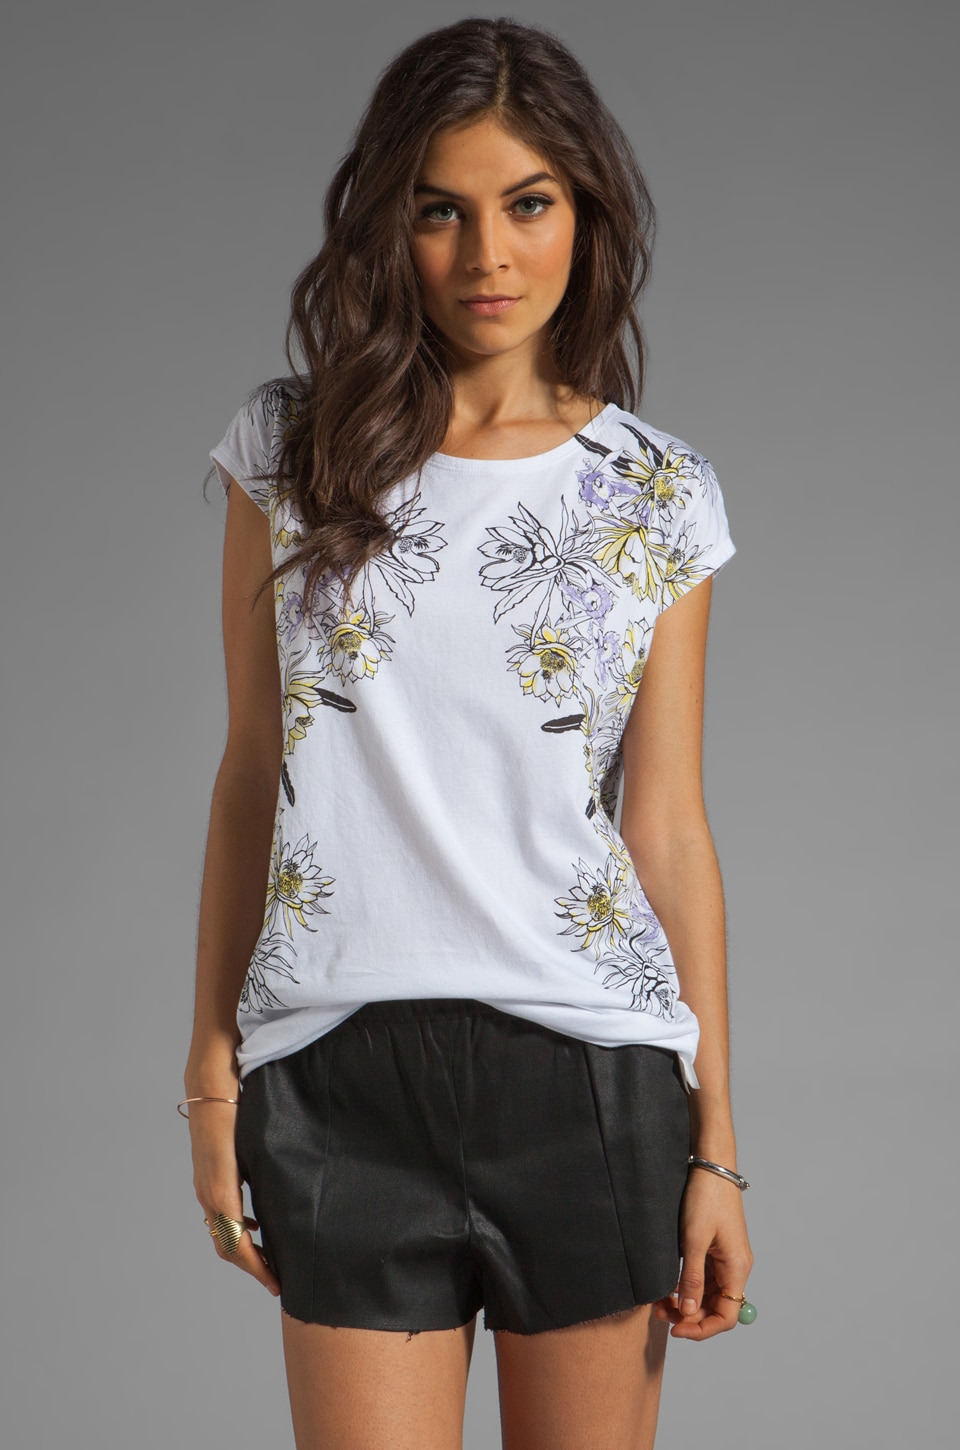 Something Else by Natalie Wood Queen Tee in White